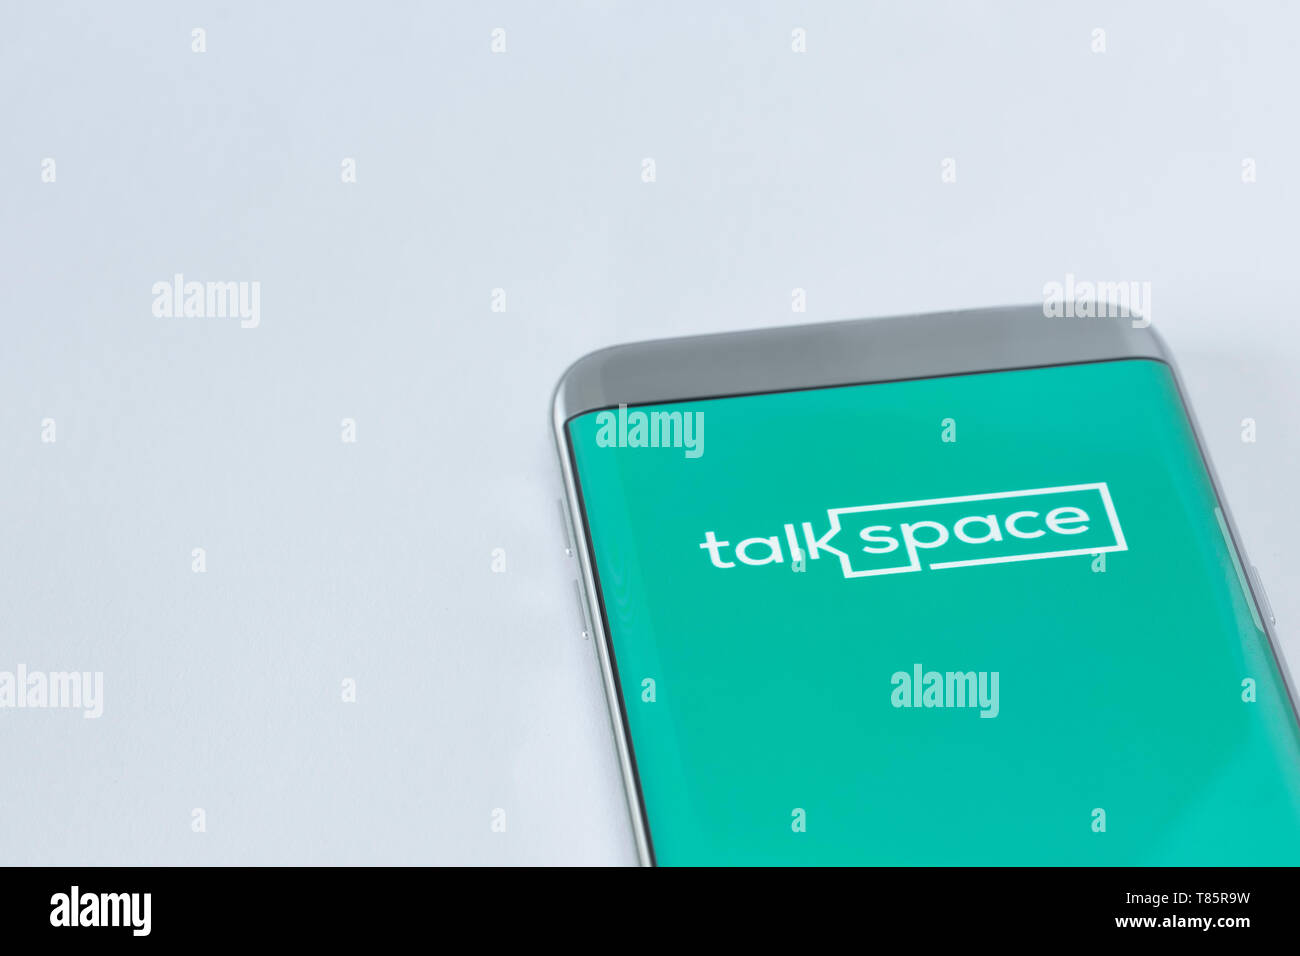 Image of Talkspace app on a smartphone on a white background - Stock Image